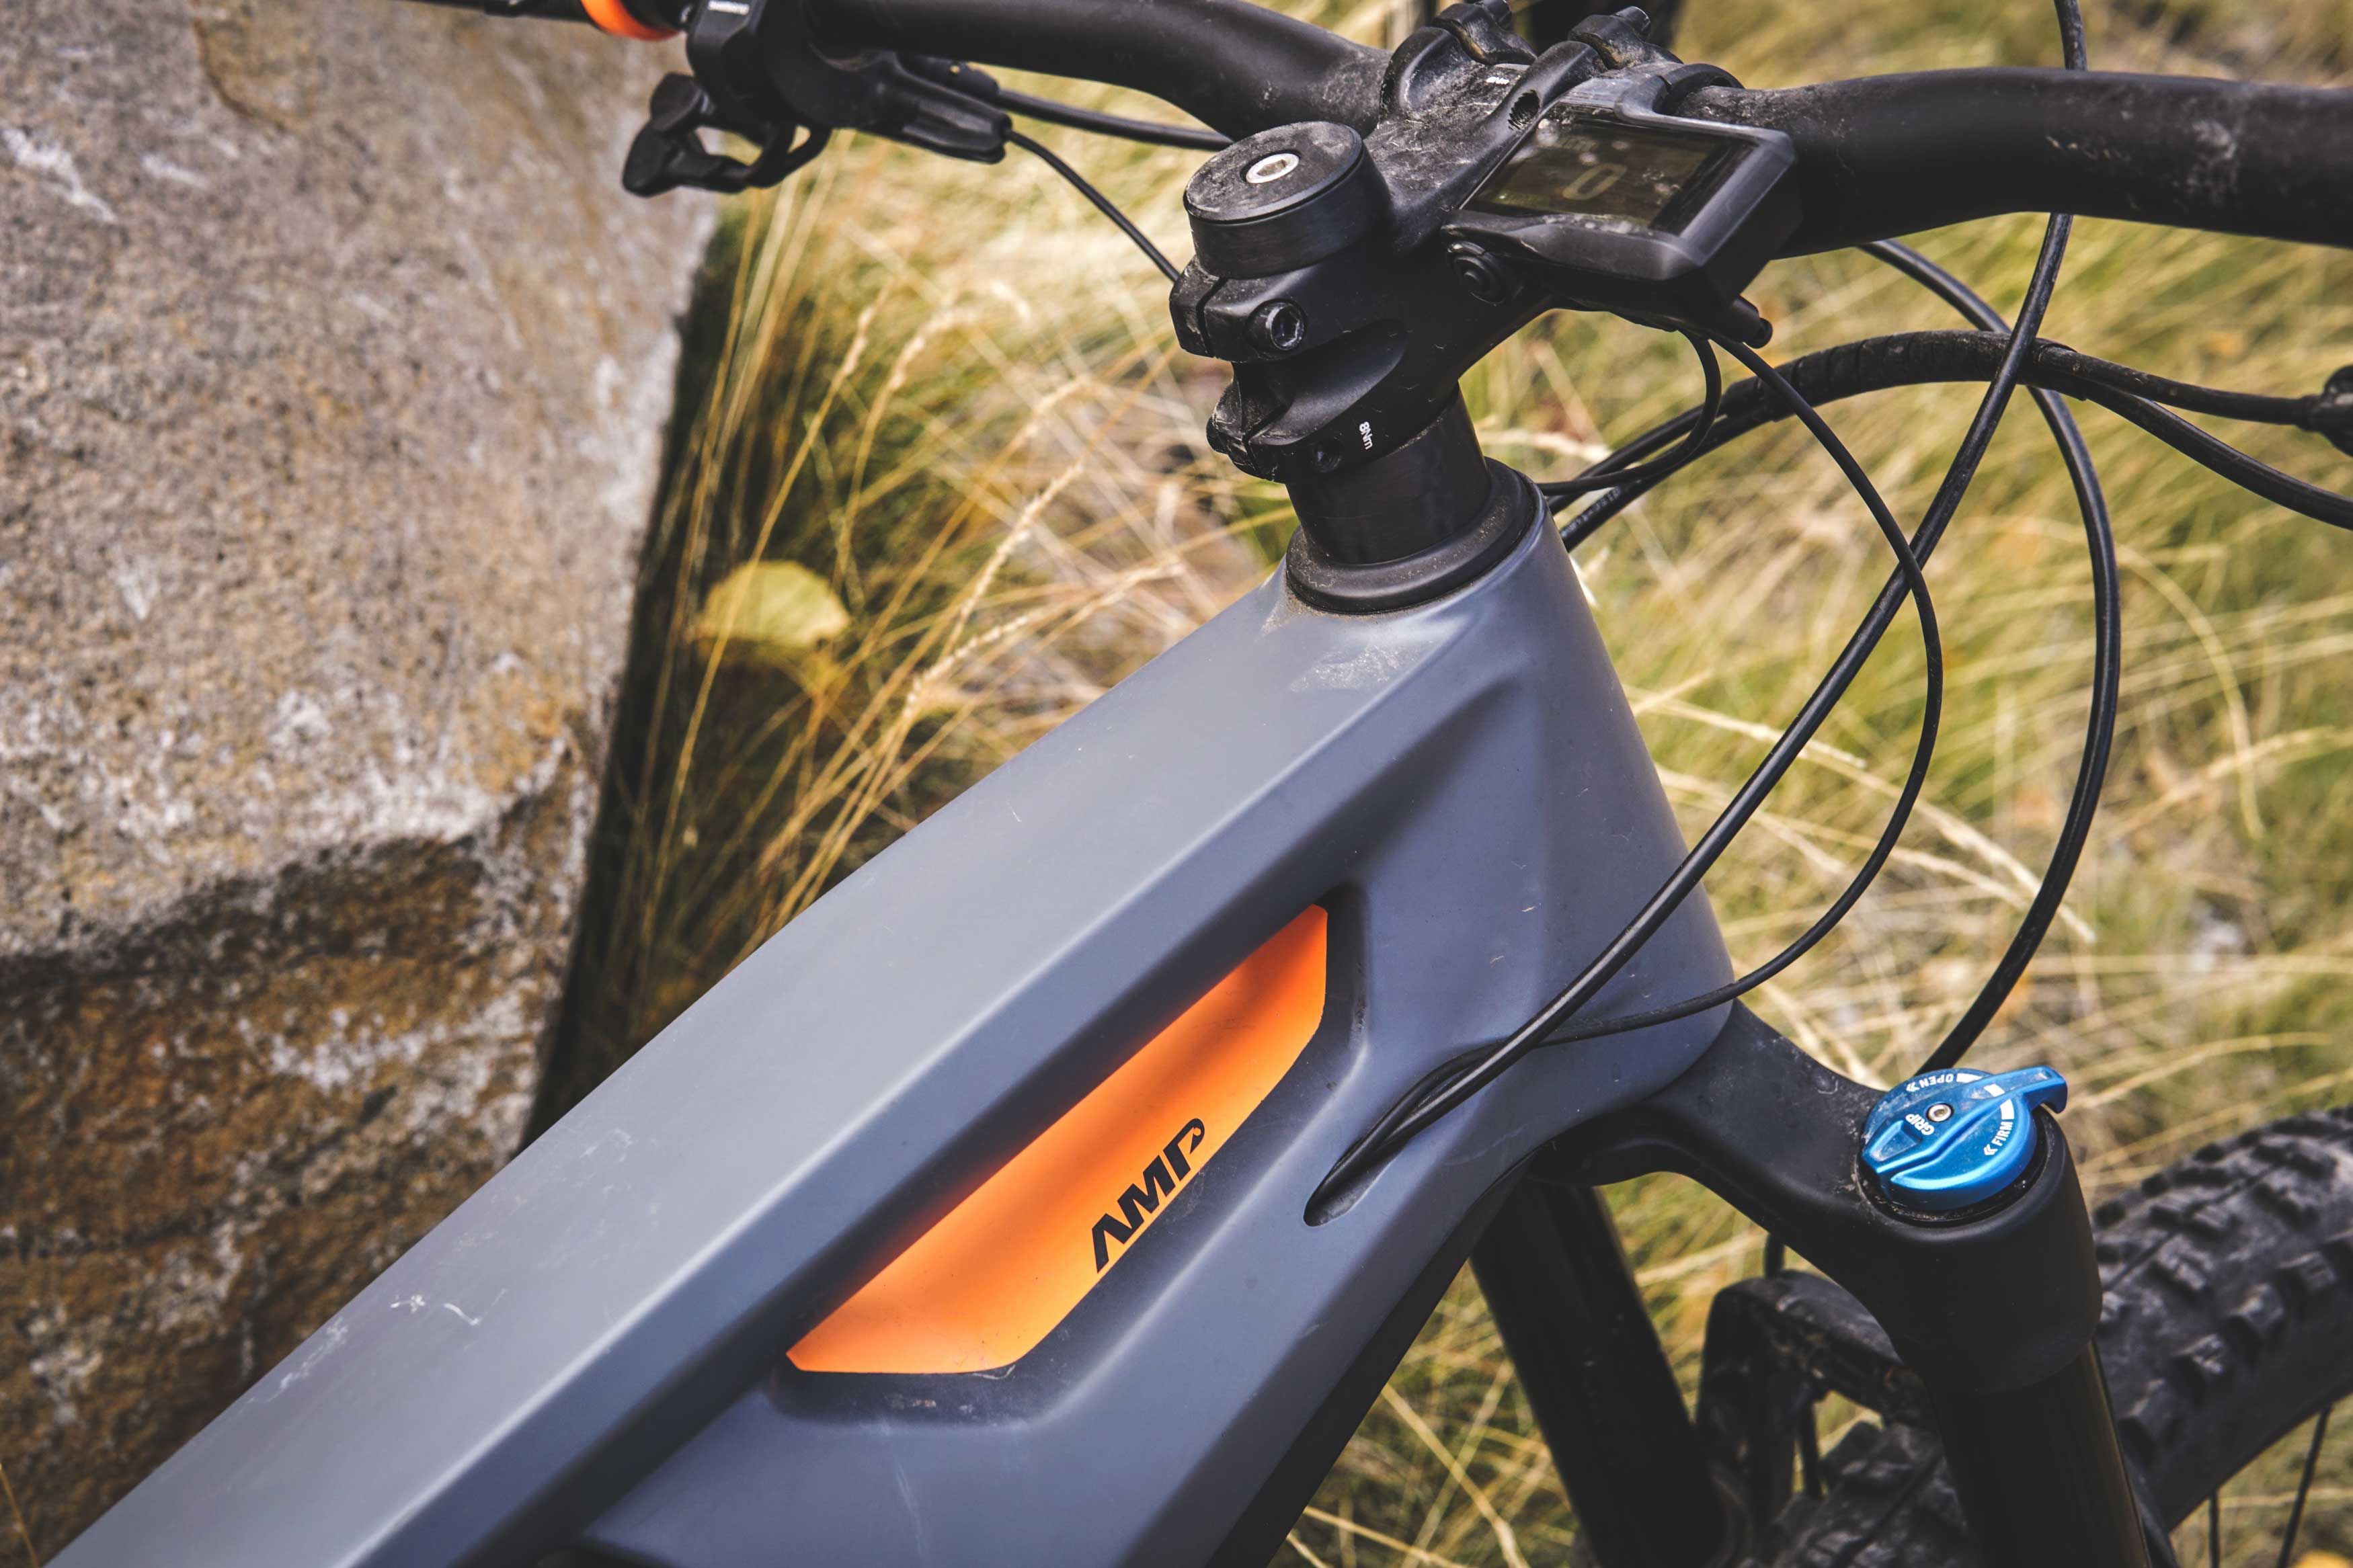 BMC Trailfox AMP ebike review - We spent several months